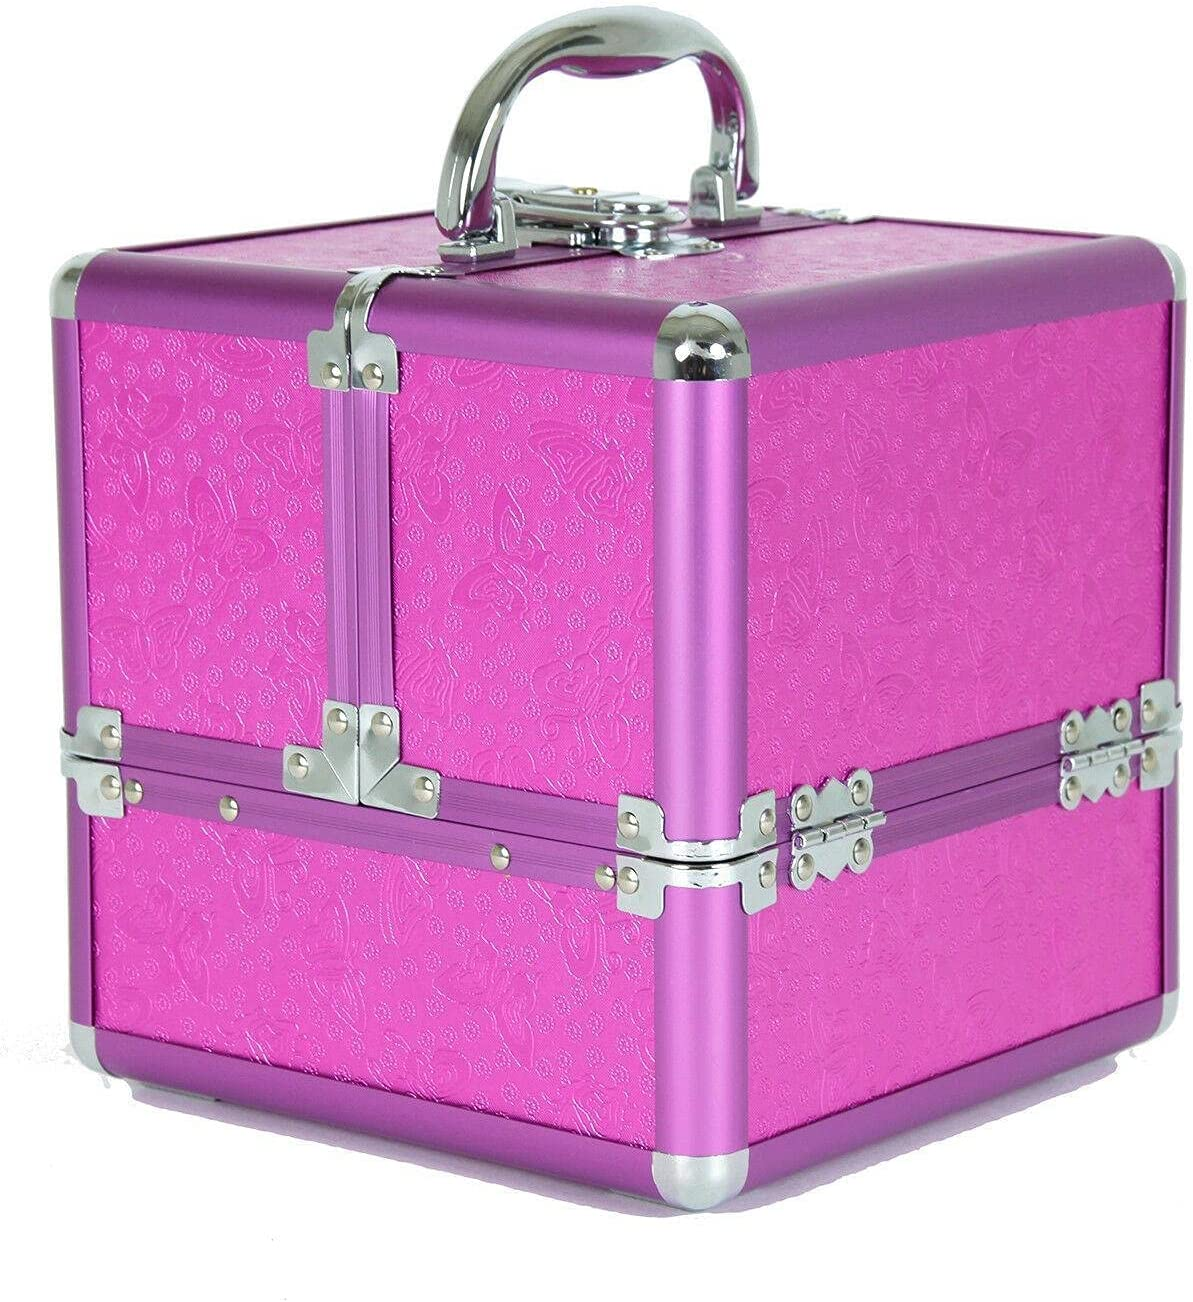 Aluminum Makeup New product type Train Case with Pink Cosmet and Organizer Beauty products Purple